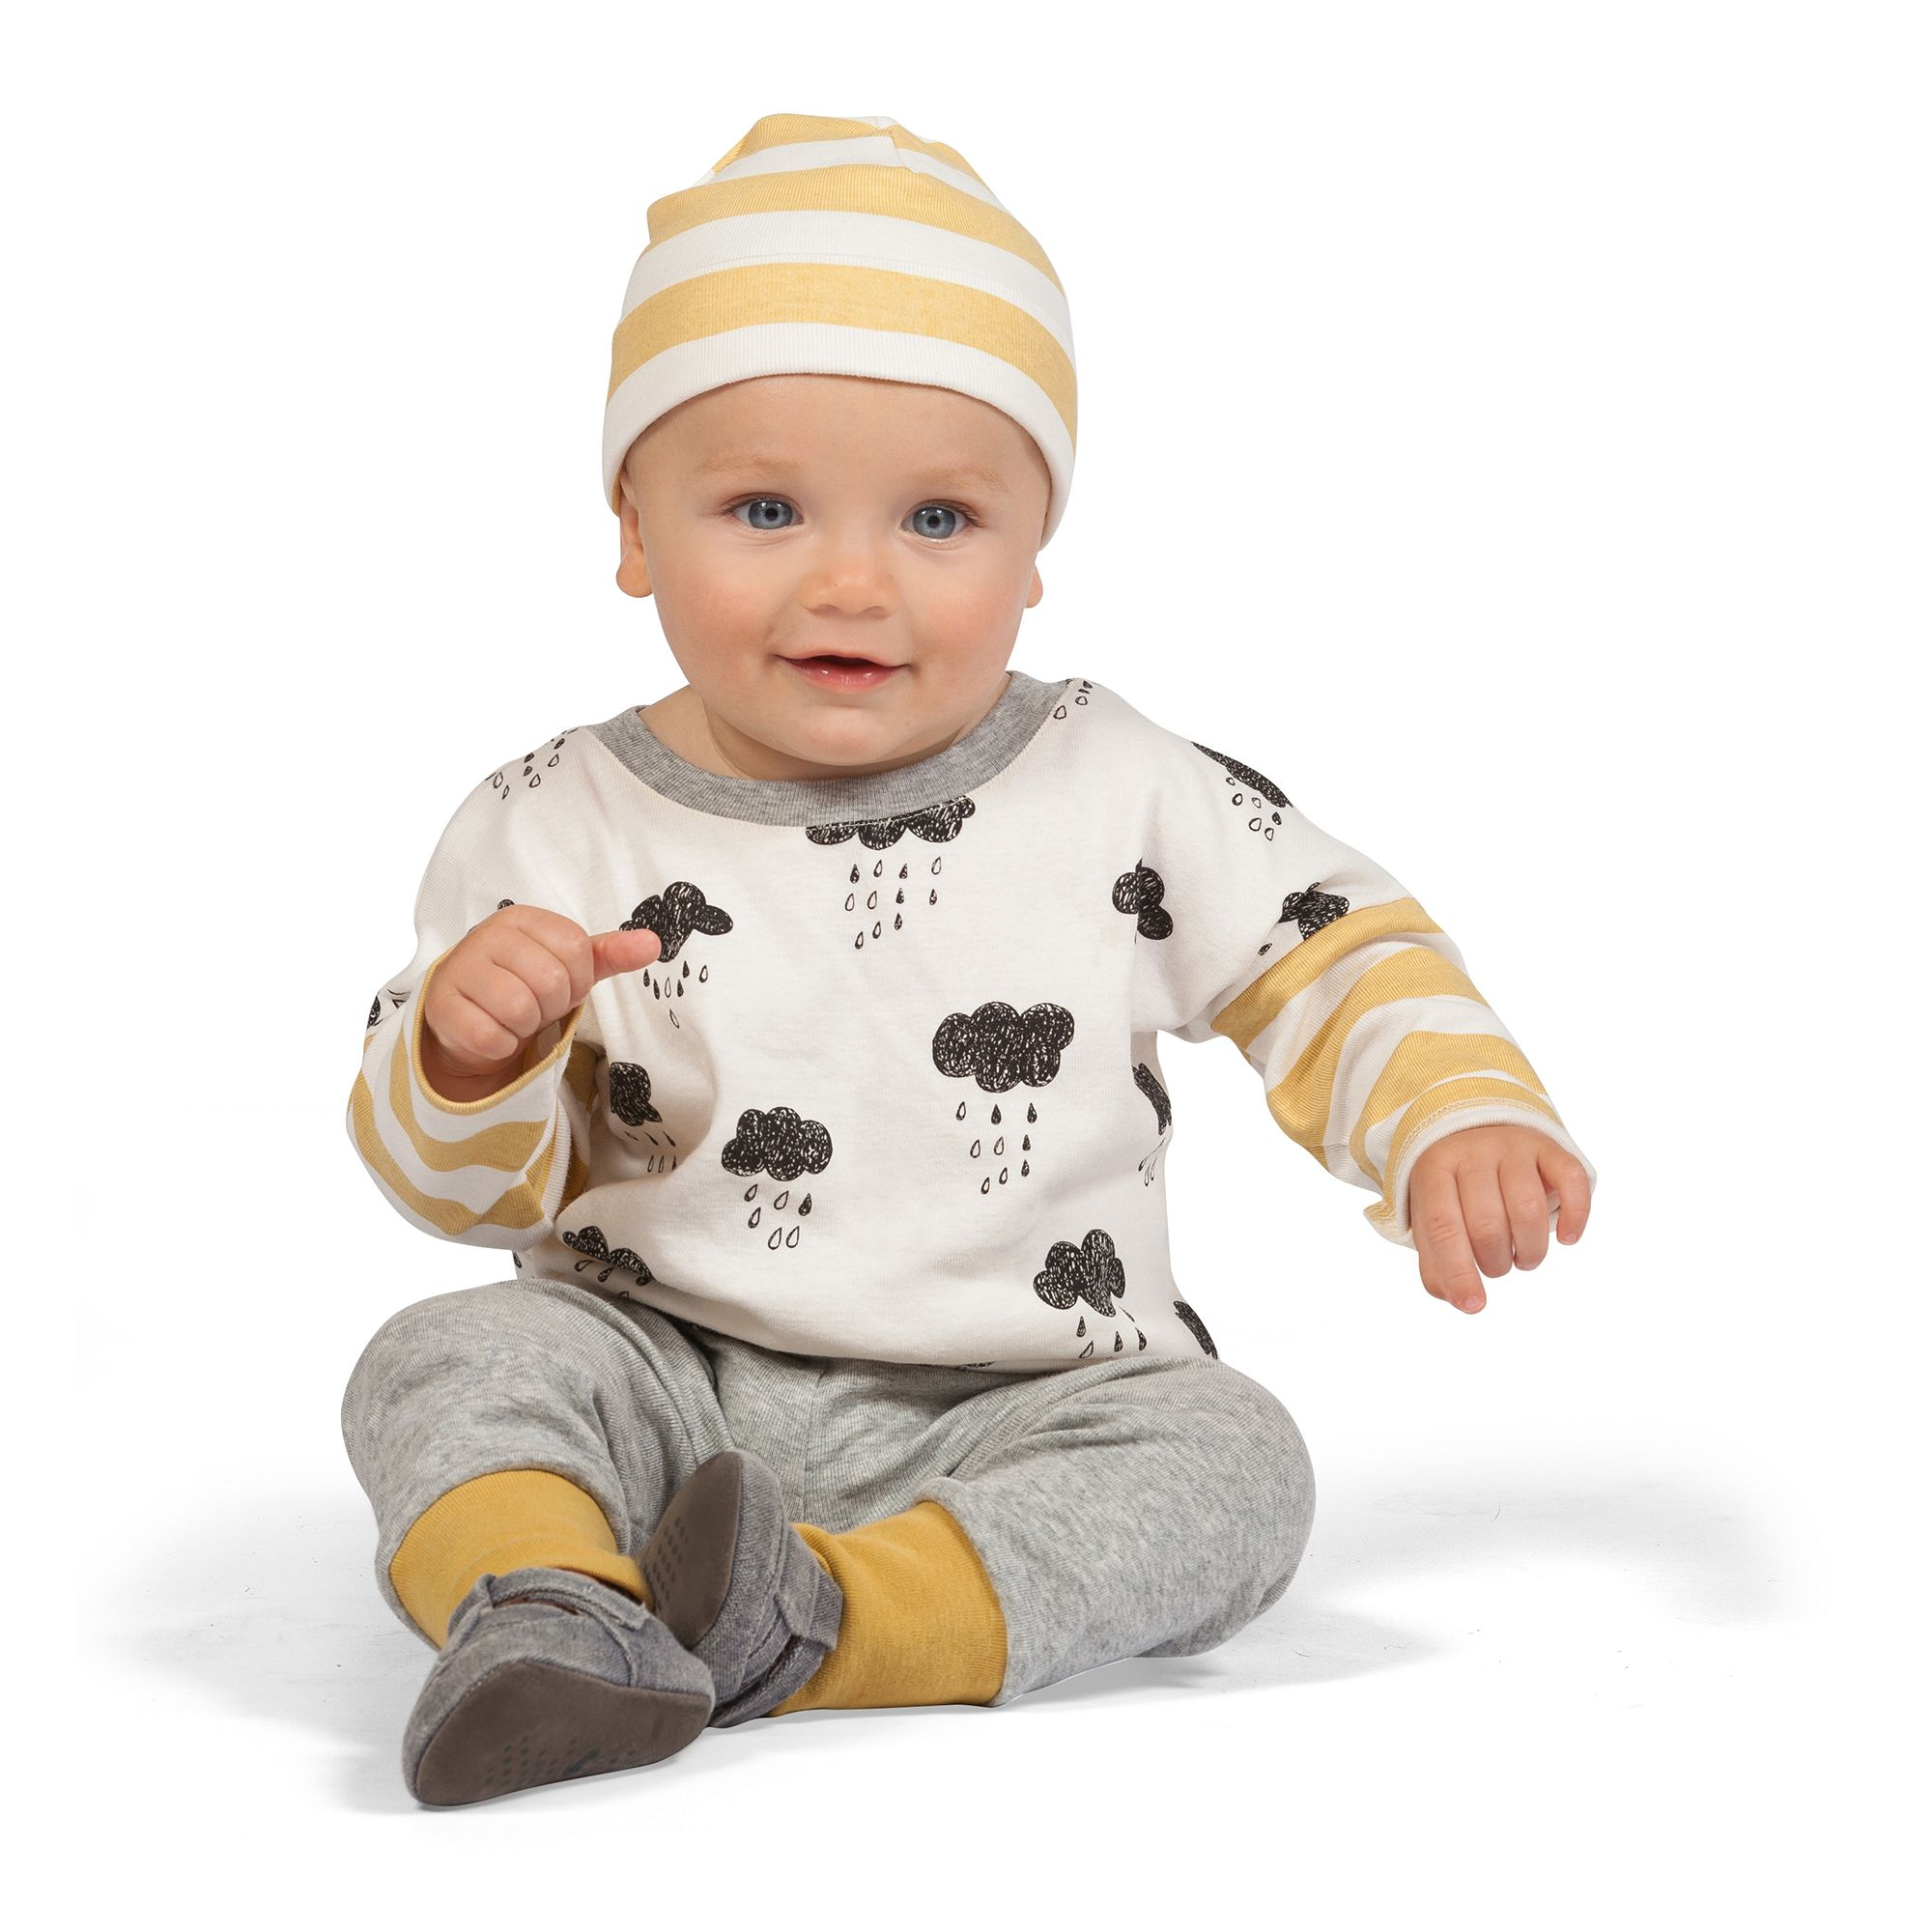 Cute Clouds Baby Boy Outfit from Tesa Babe